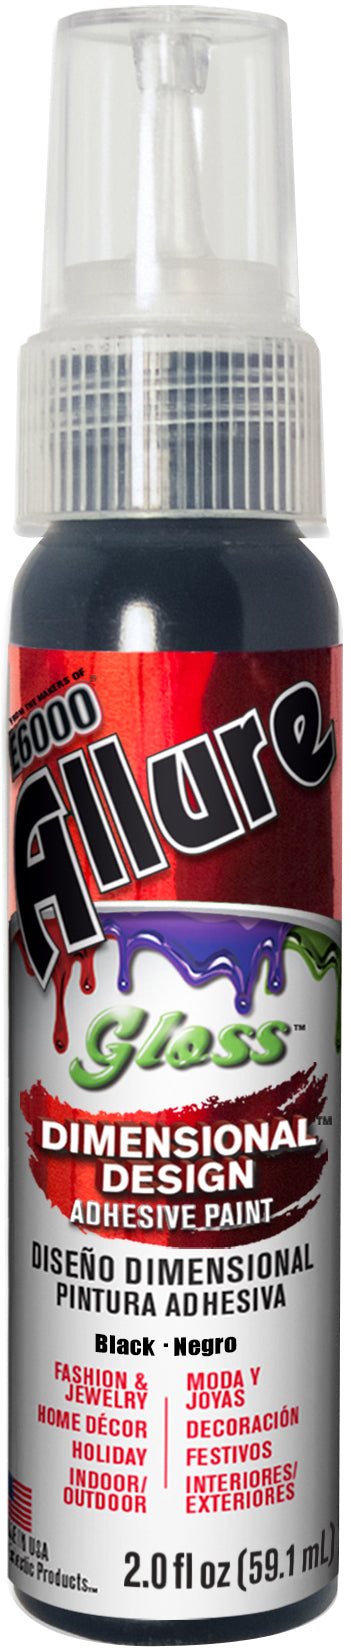 Allure Gloss Dimensional Design Adhesive Paint 2oz-Black